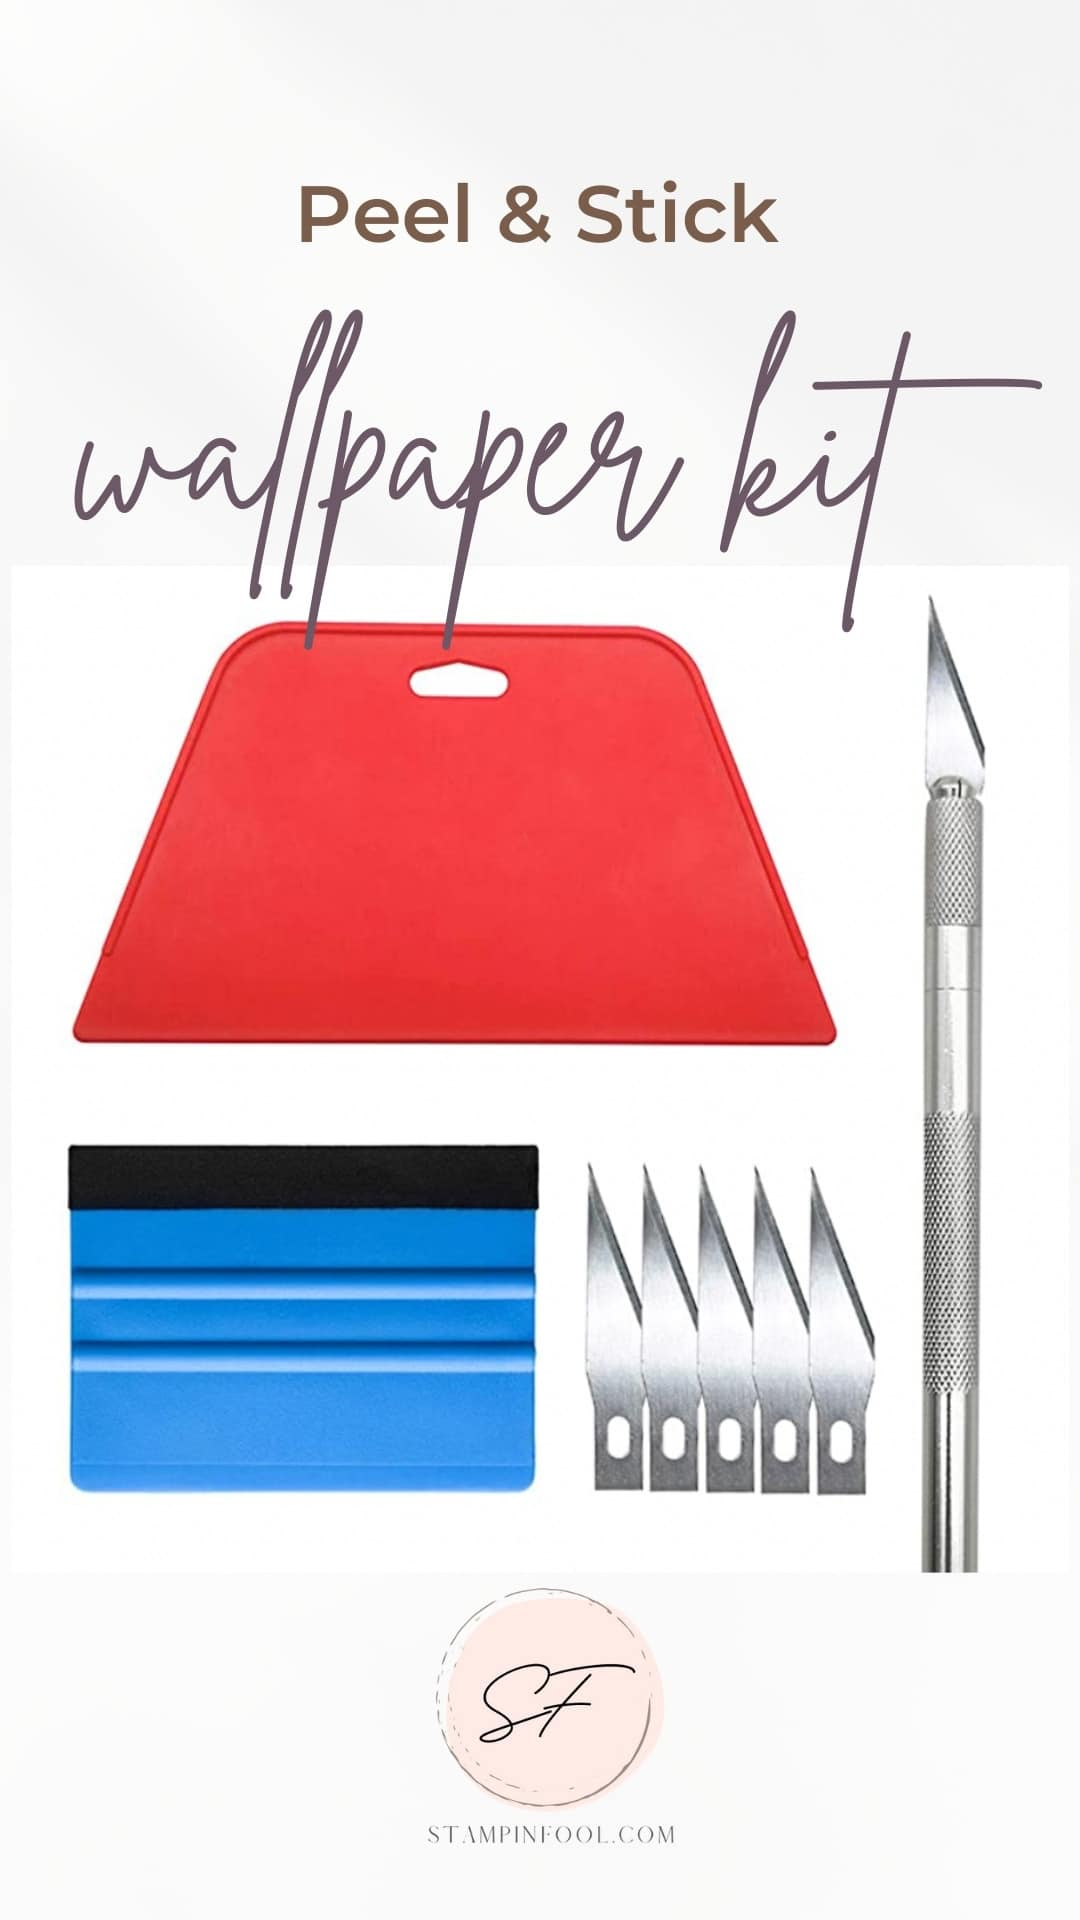 Peel and Stick wallpaper hanging kit with supplies from Amazon